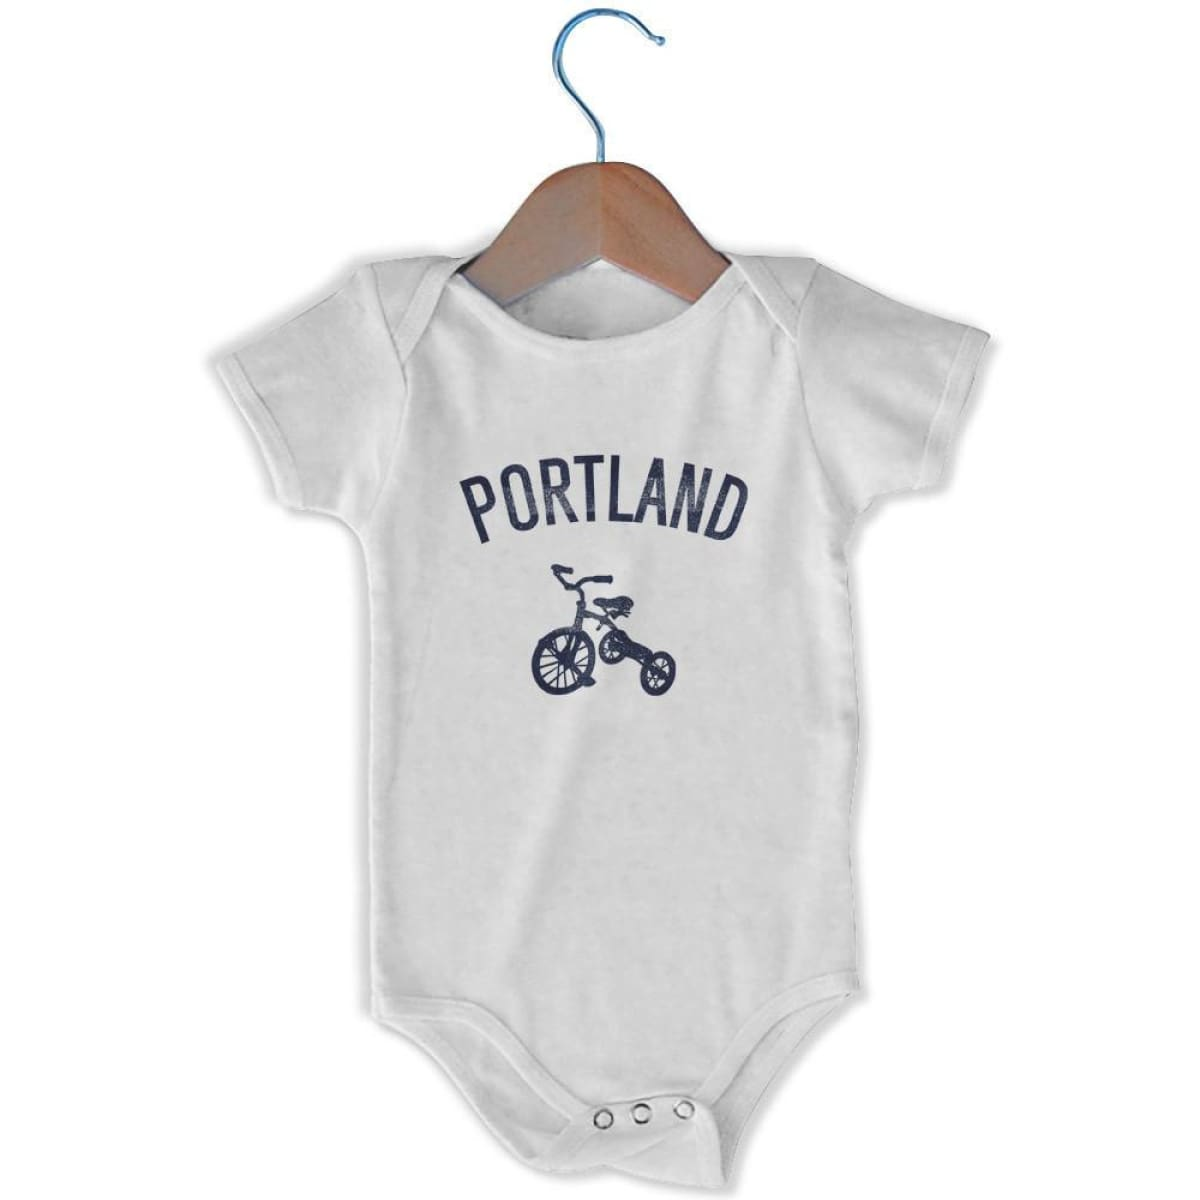 Portland City Tricycle Infant Onesie - White / 6 - 9 Months - Mile End City